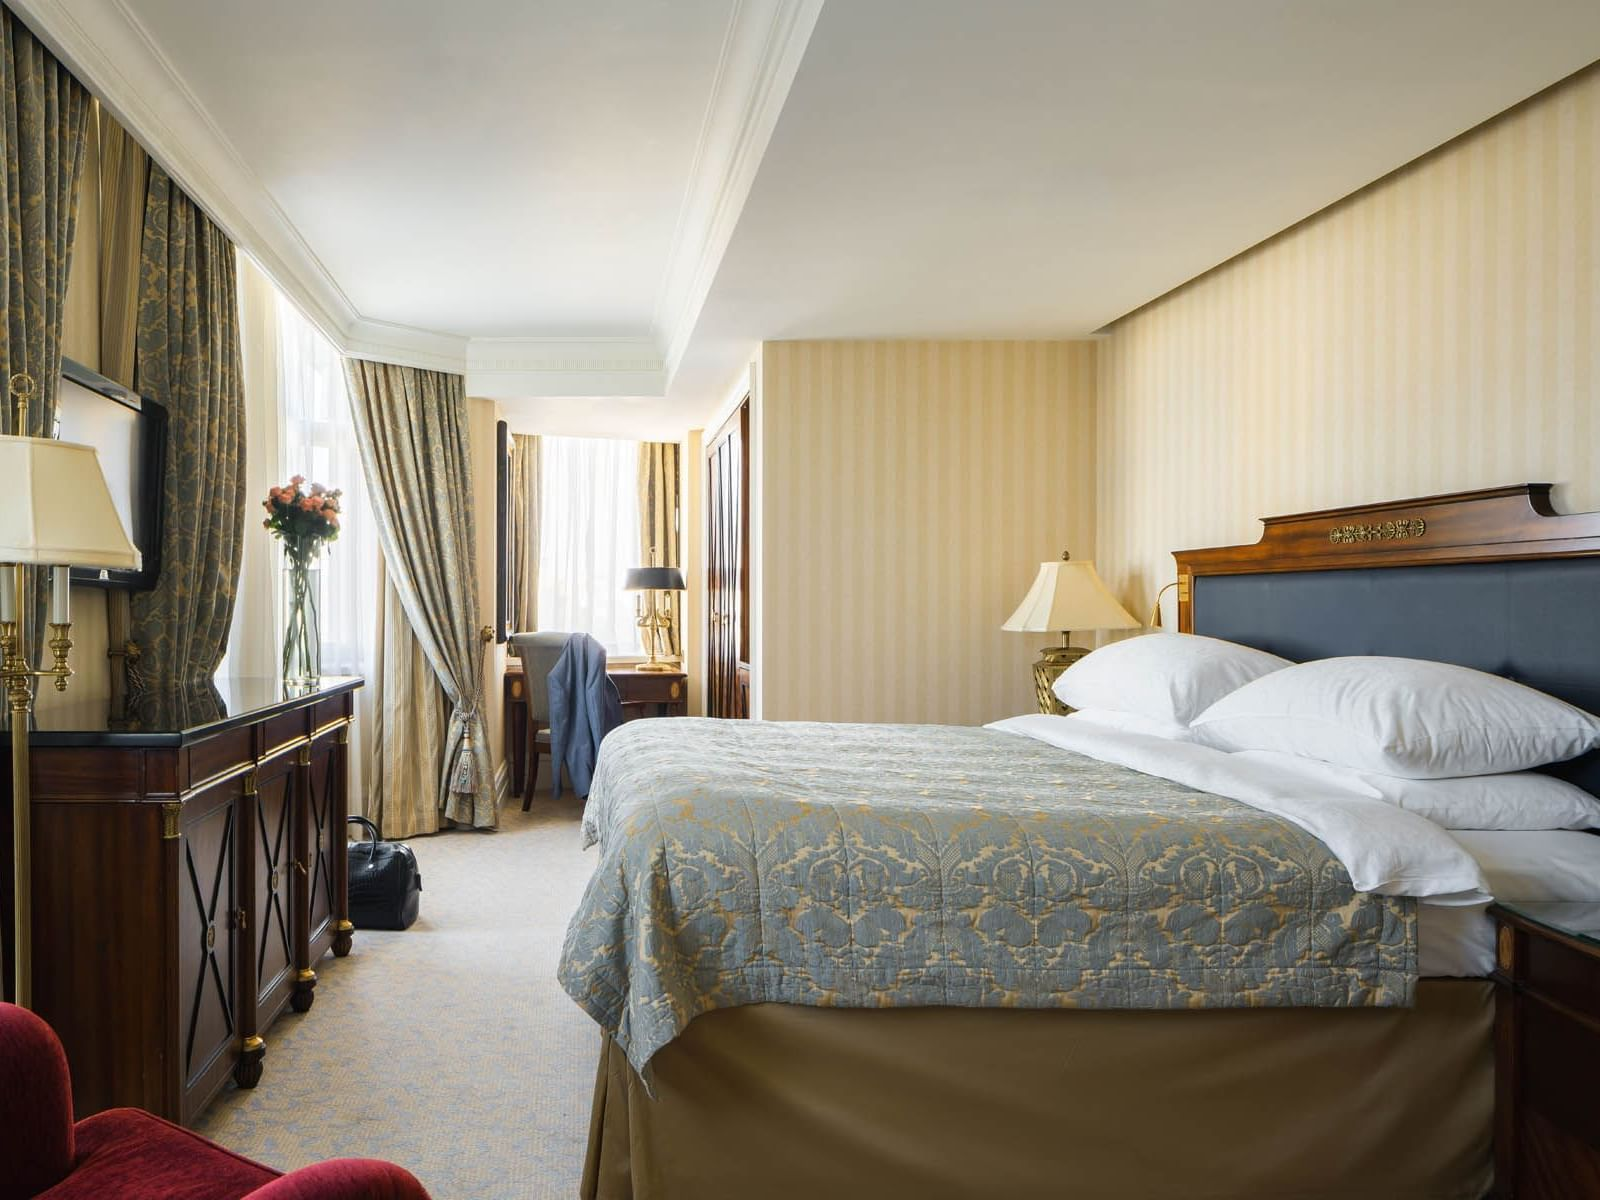 Relax in Ambassador Suite rooms at Intercontinental Kyiv hotel